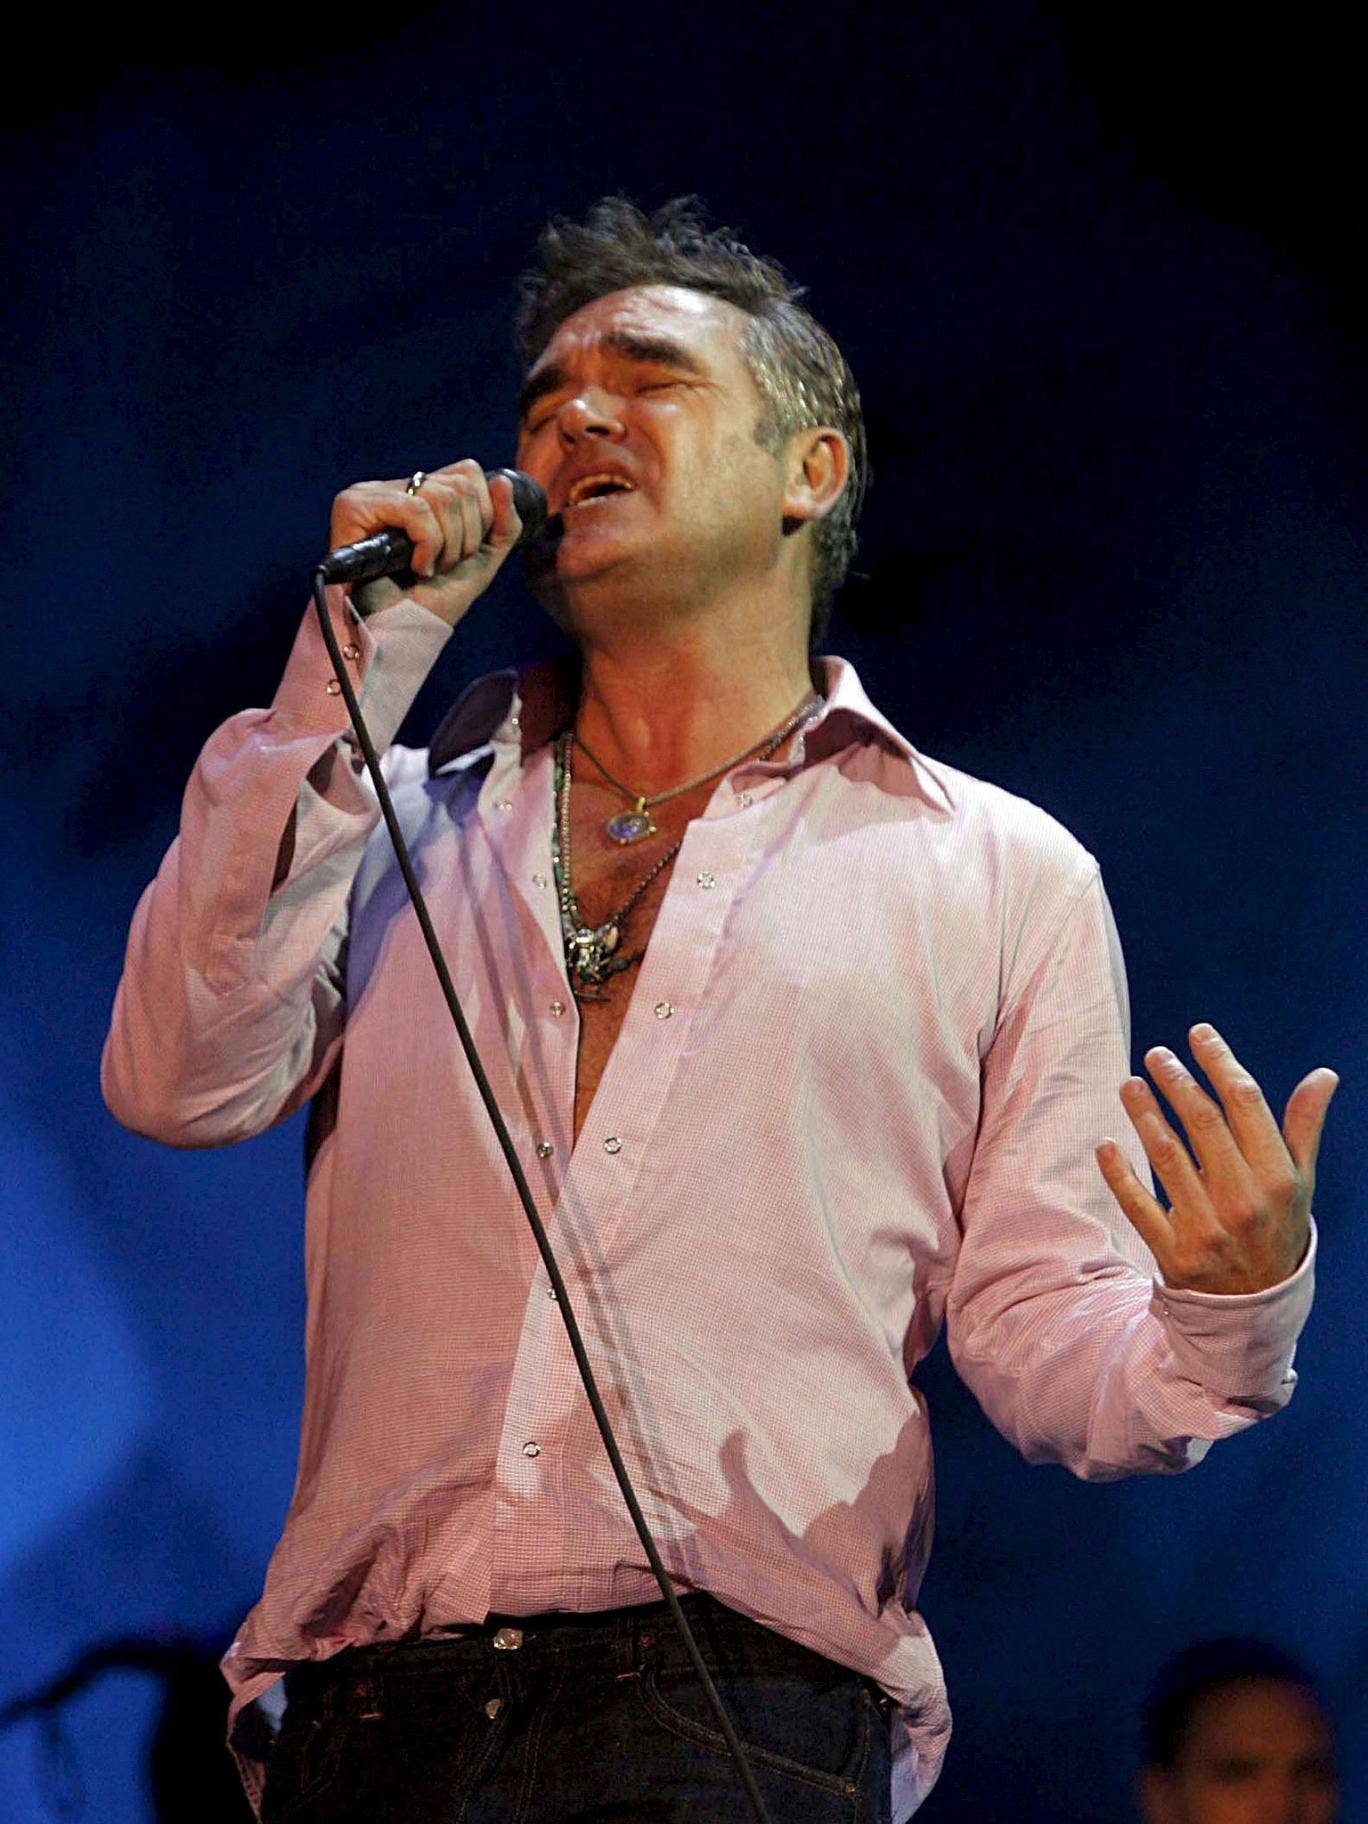 Out of this world: Morrissey